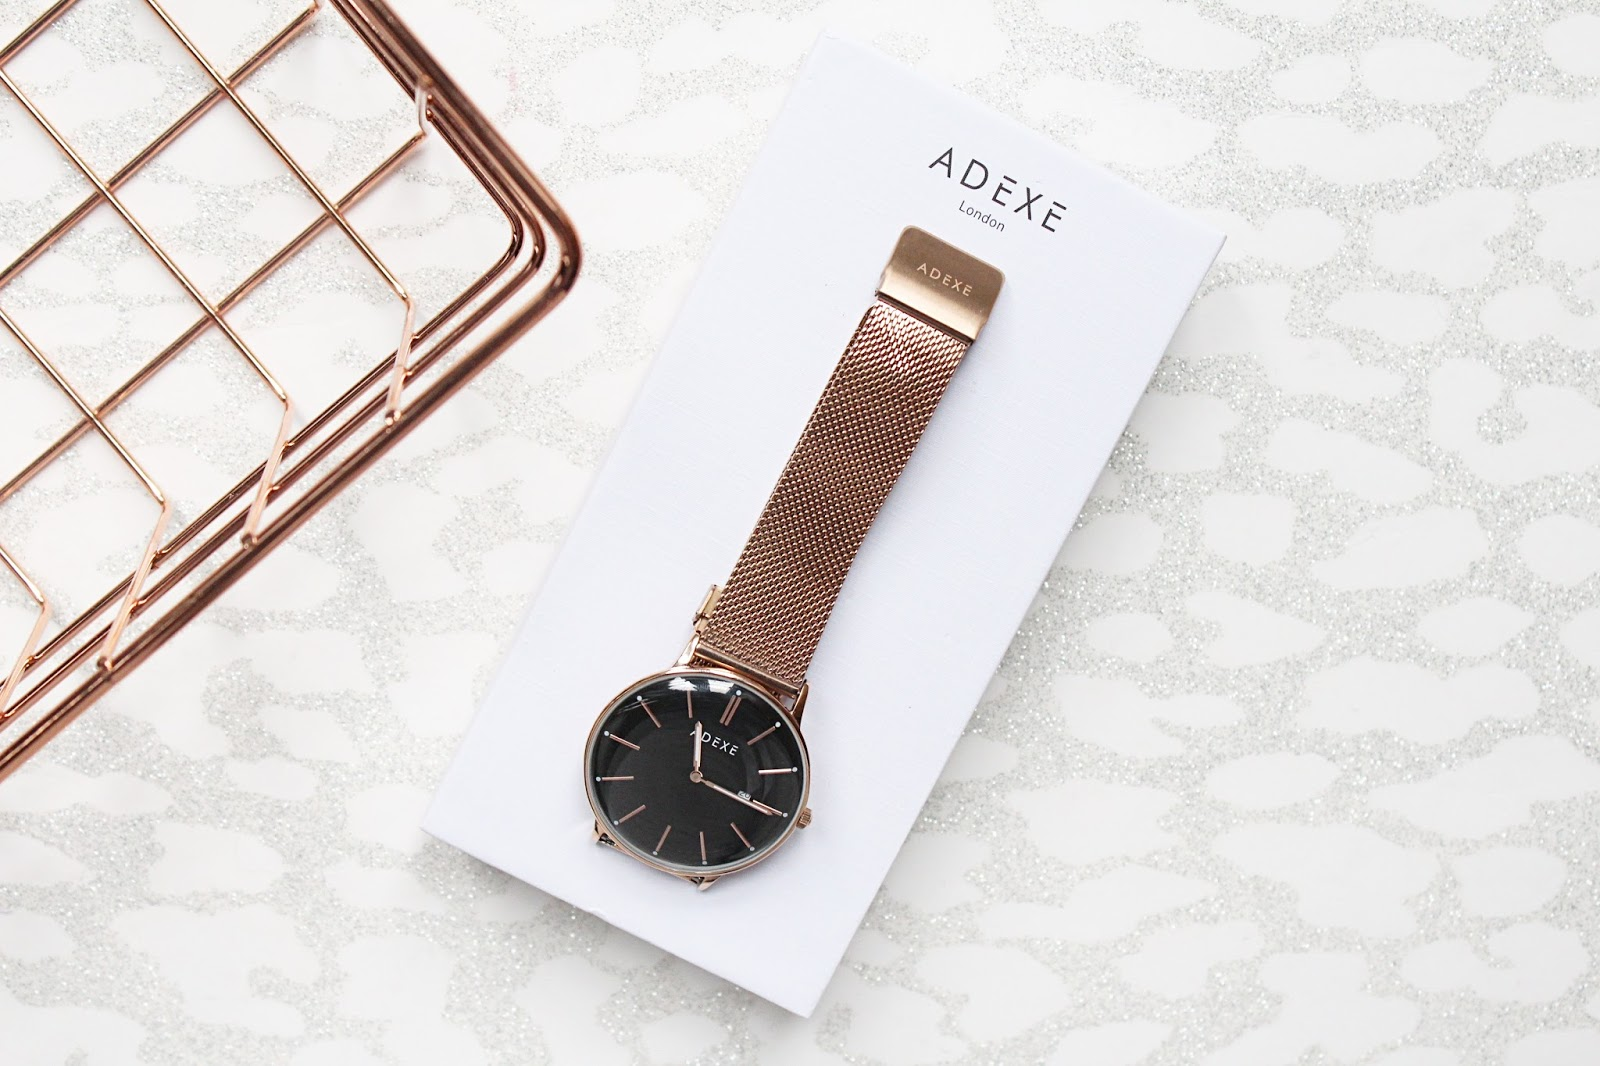 Adexe Watch